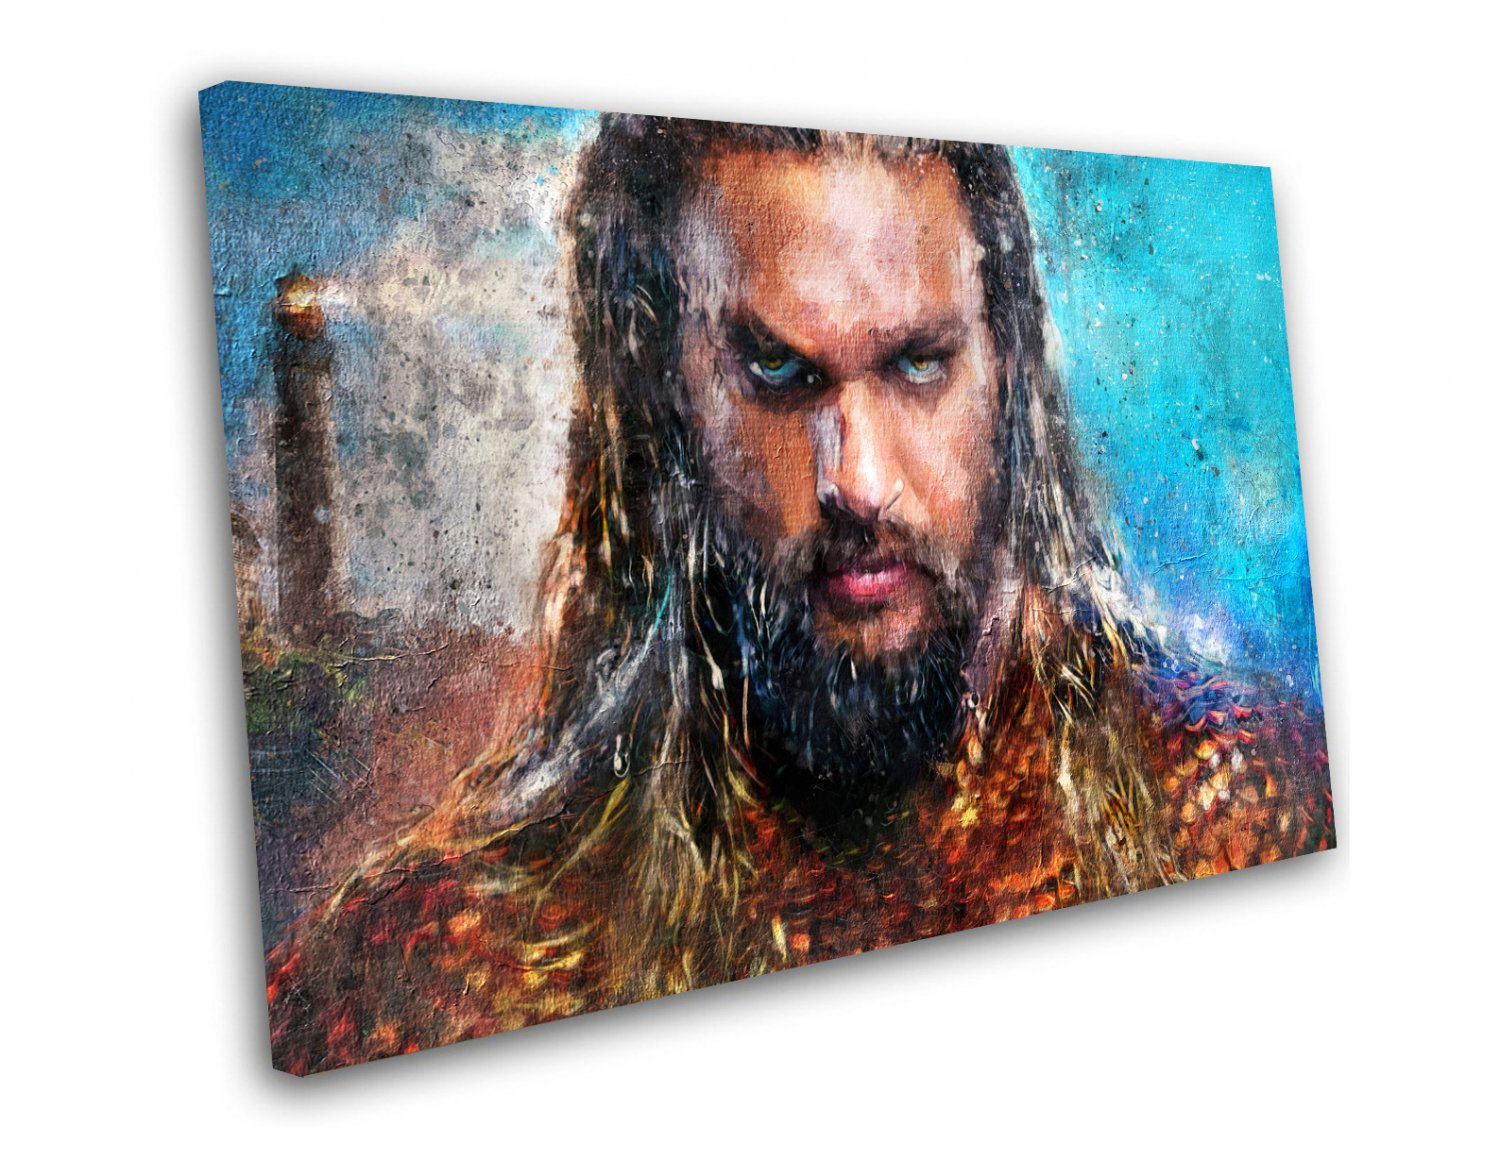 Aquaman, Jason Momoa, Movie  8x12 inches Stretched Canvas